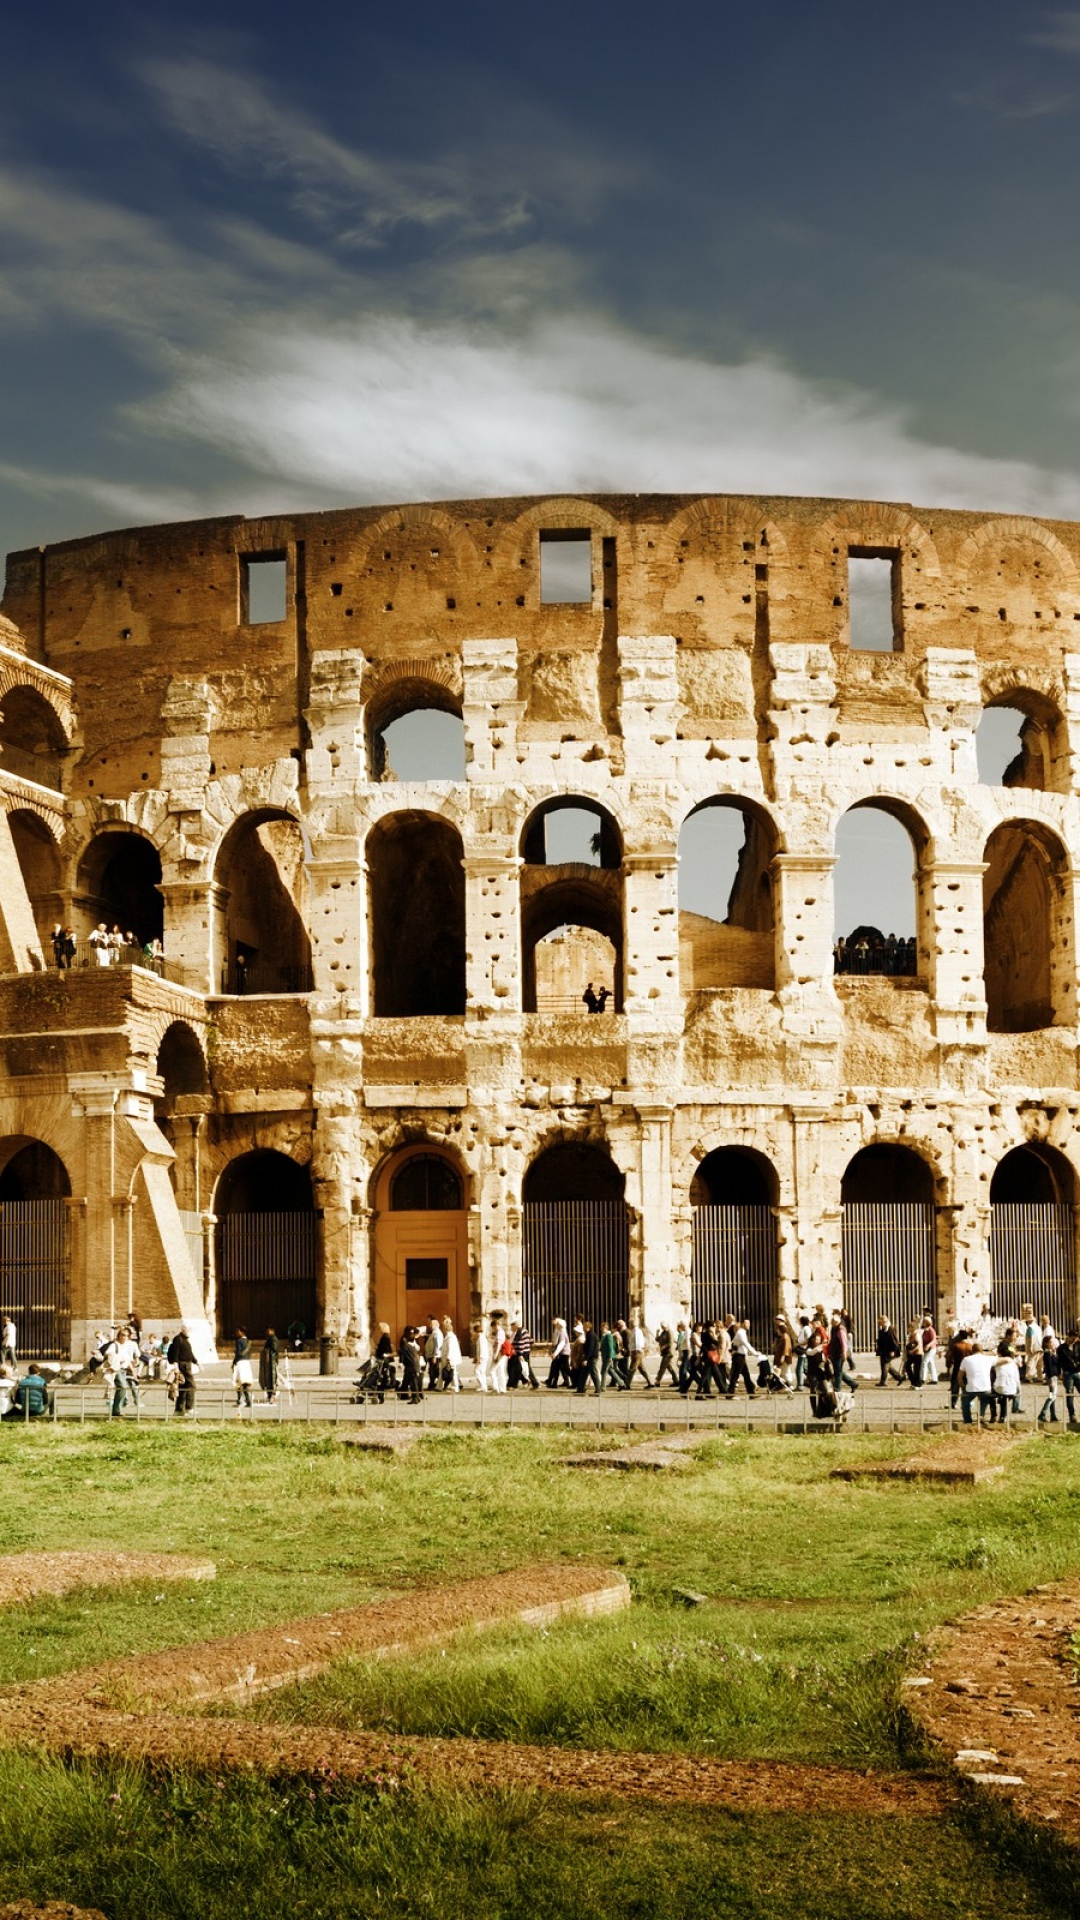 3d Wallpaper For Htc One M8 Rome Colosseum Best Htc One Wallpapers Free And Easy To